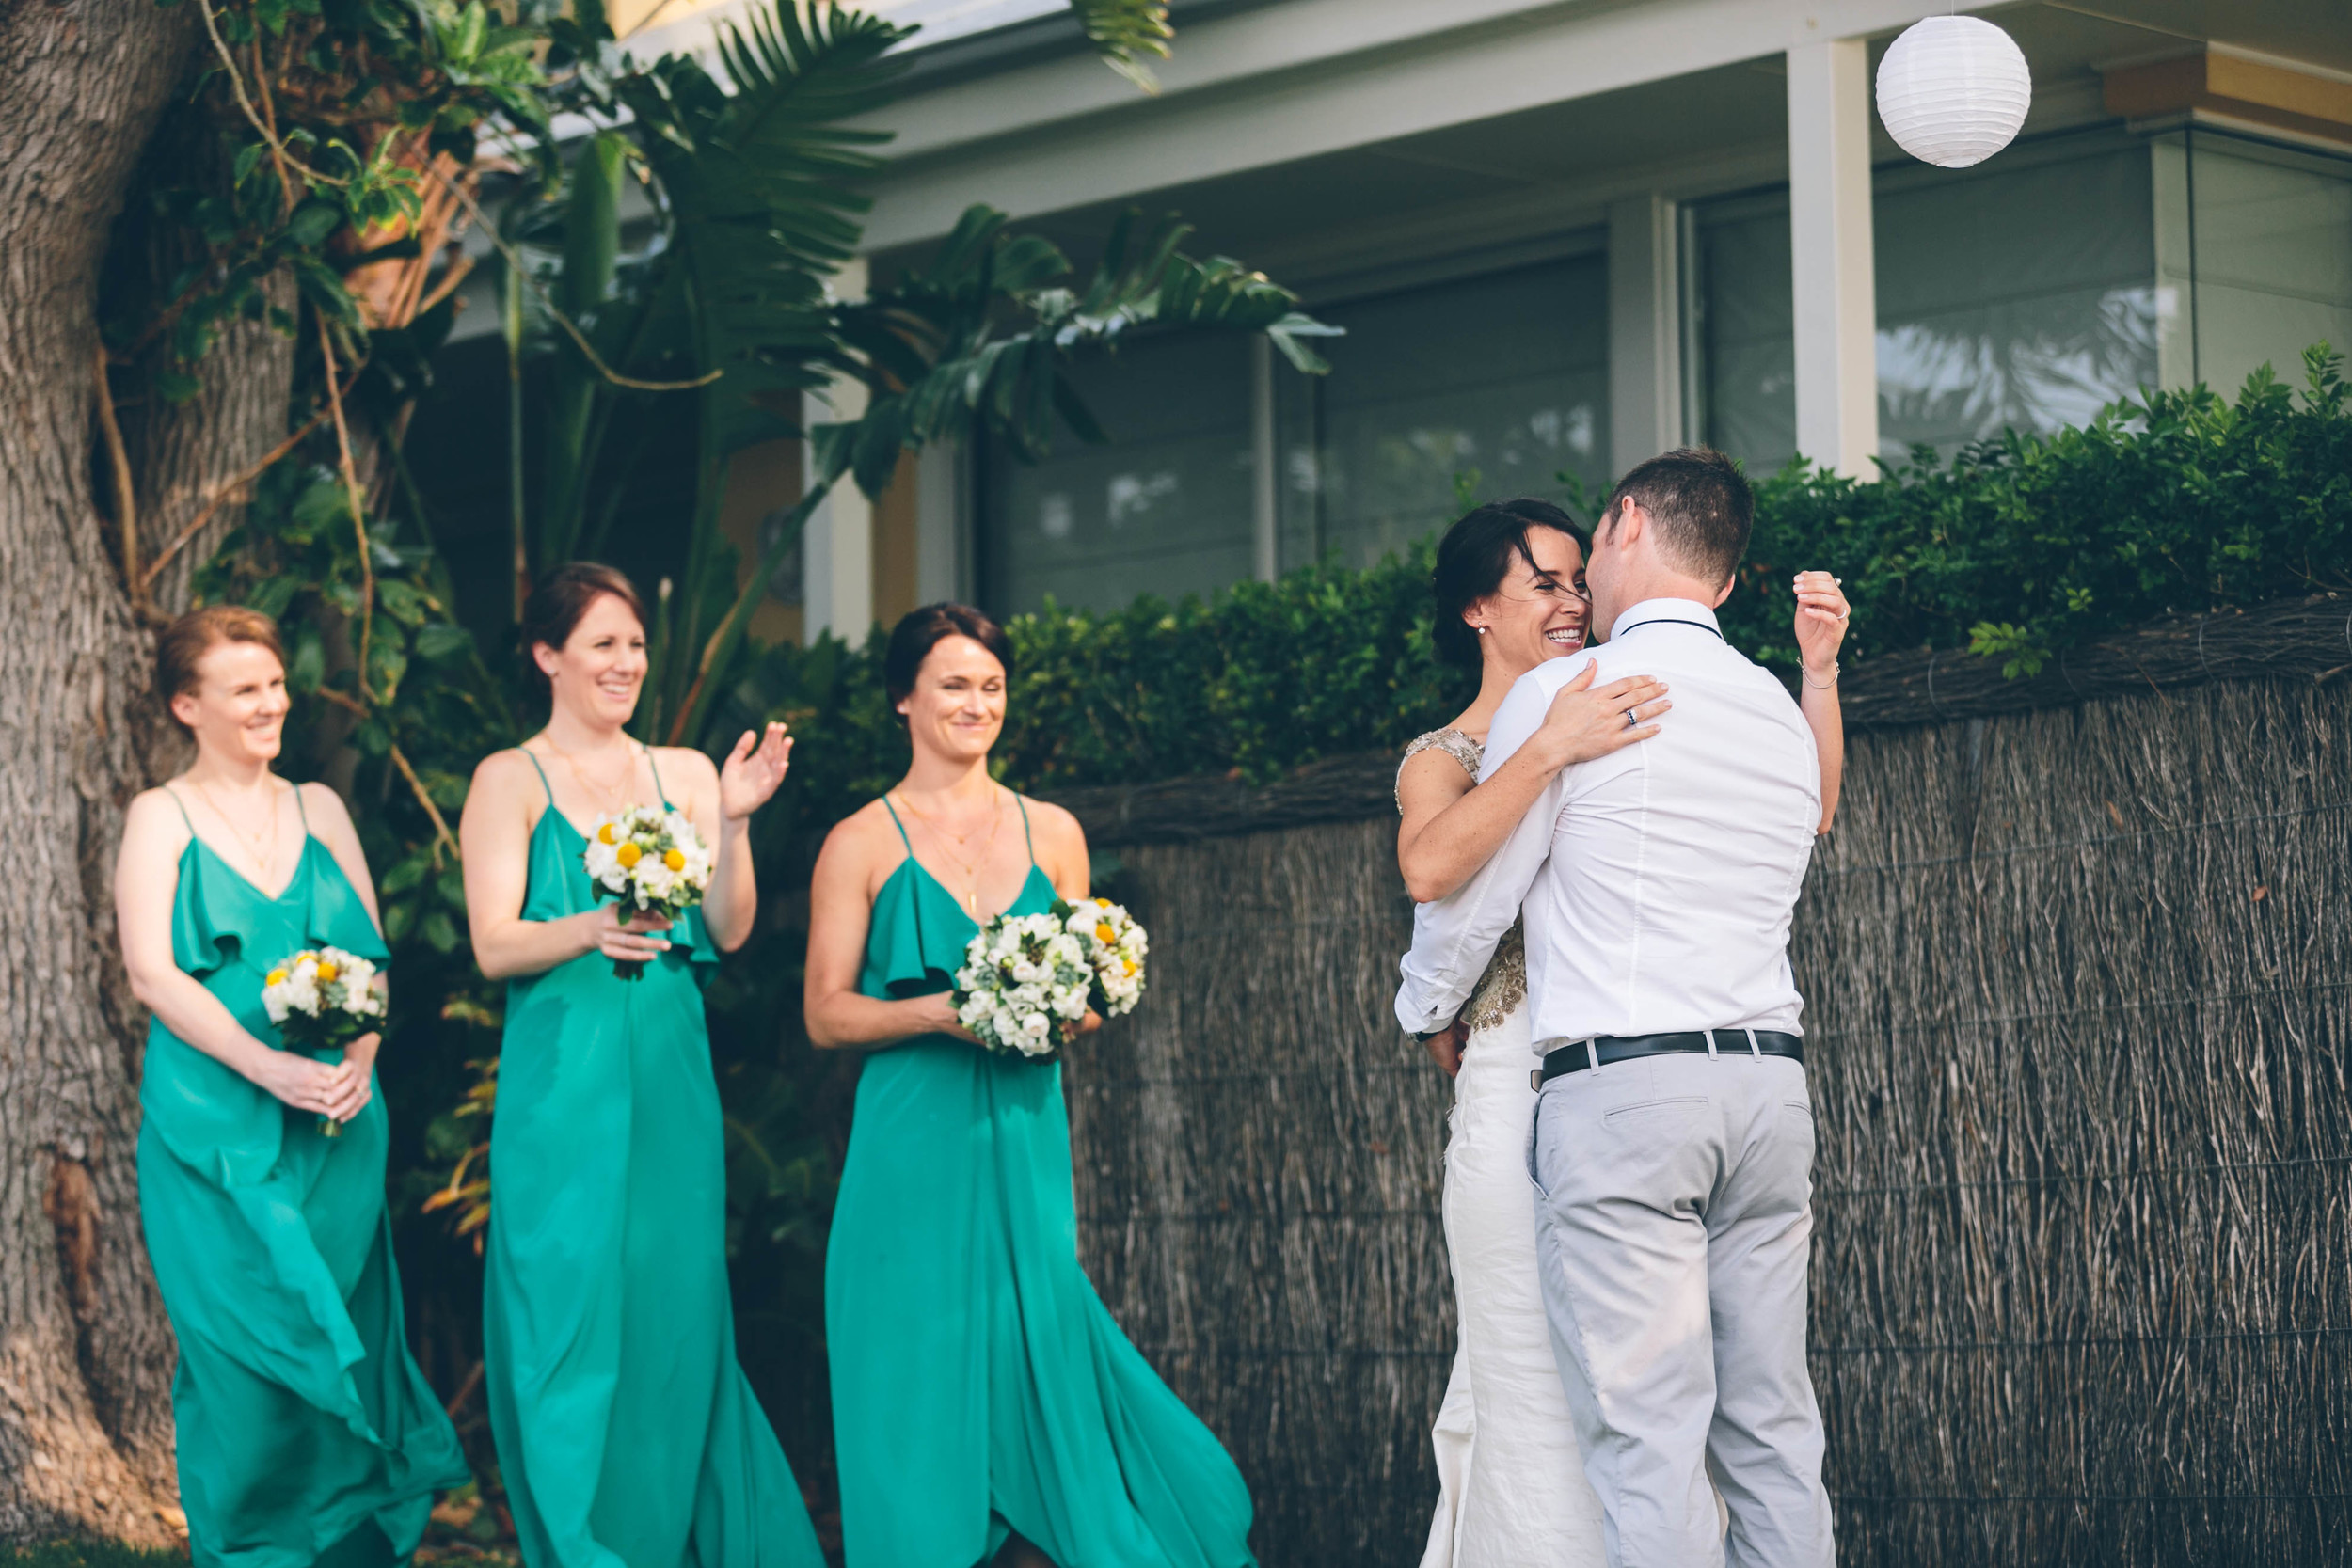 Maddy and Dan wedding, The Boathouse Palm Beach by Milton Gan Photography 066.jpg